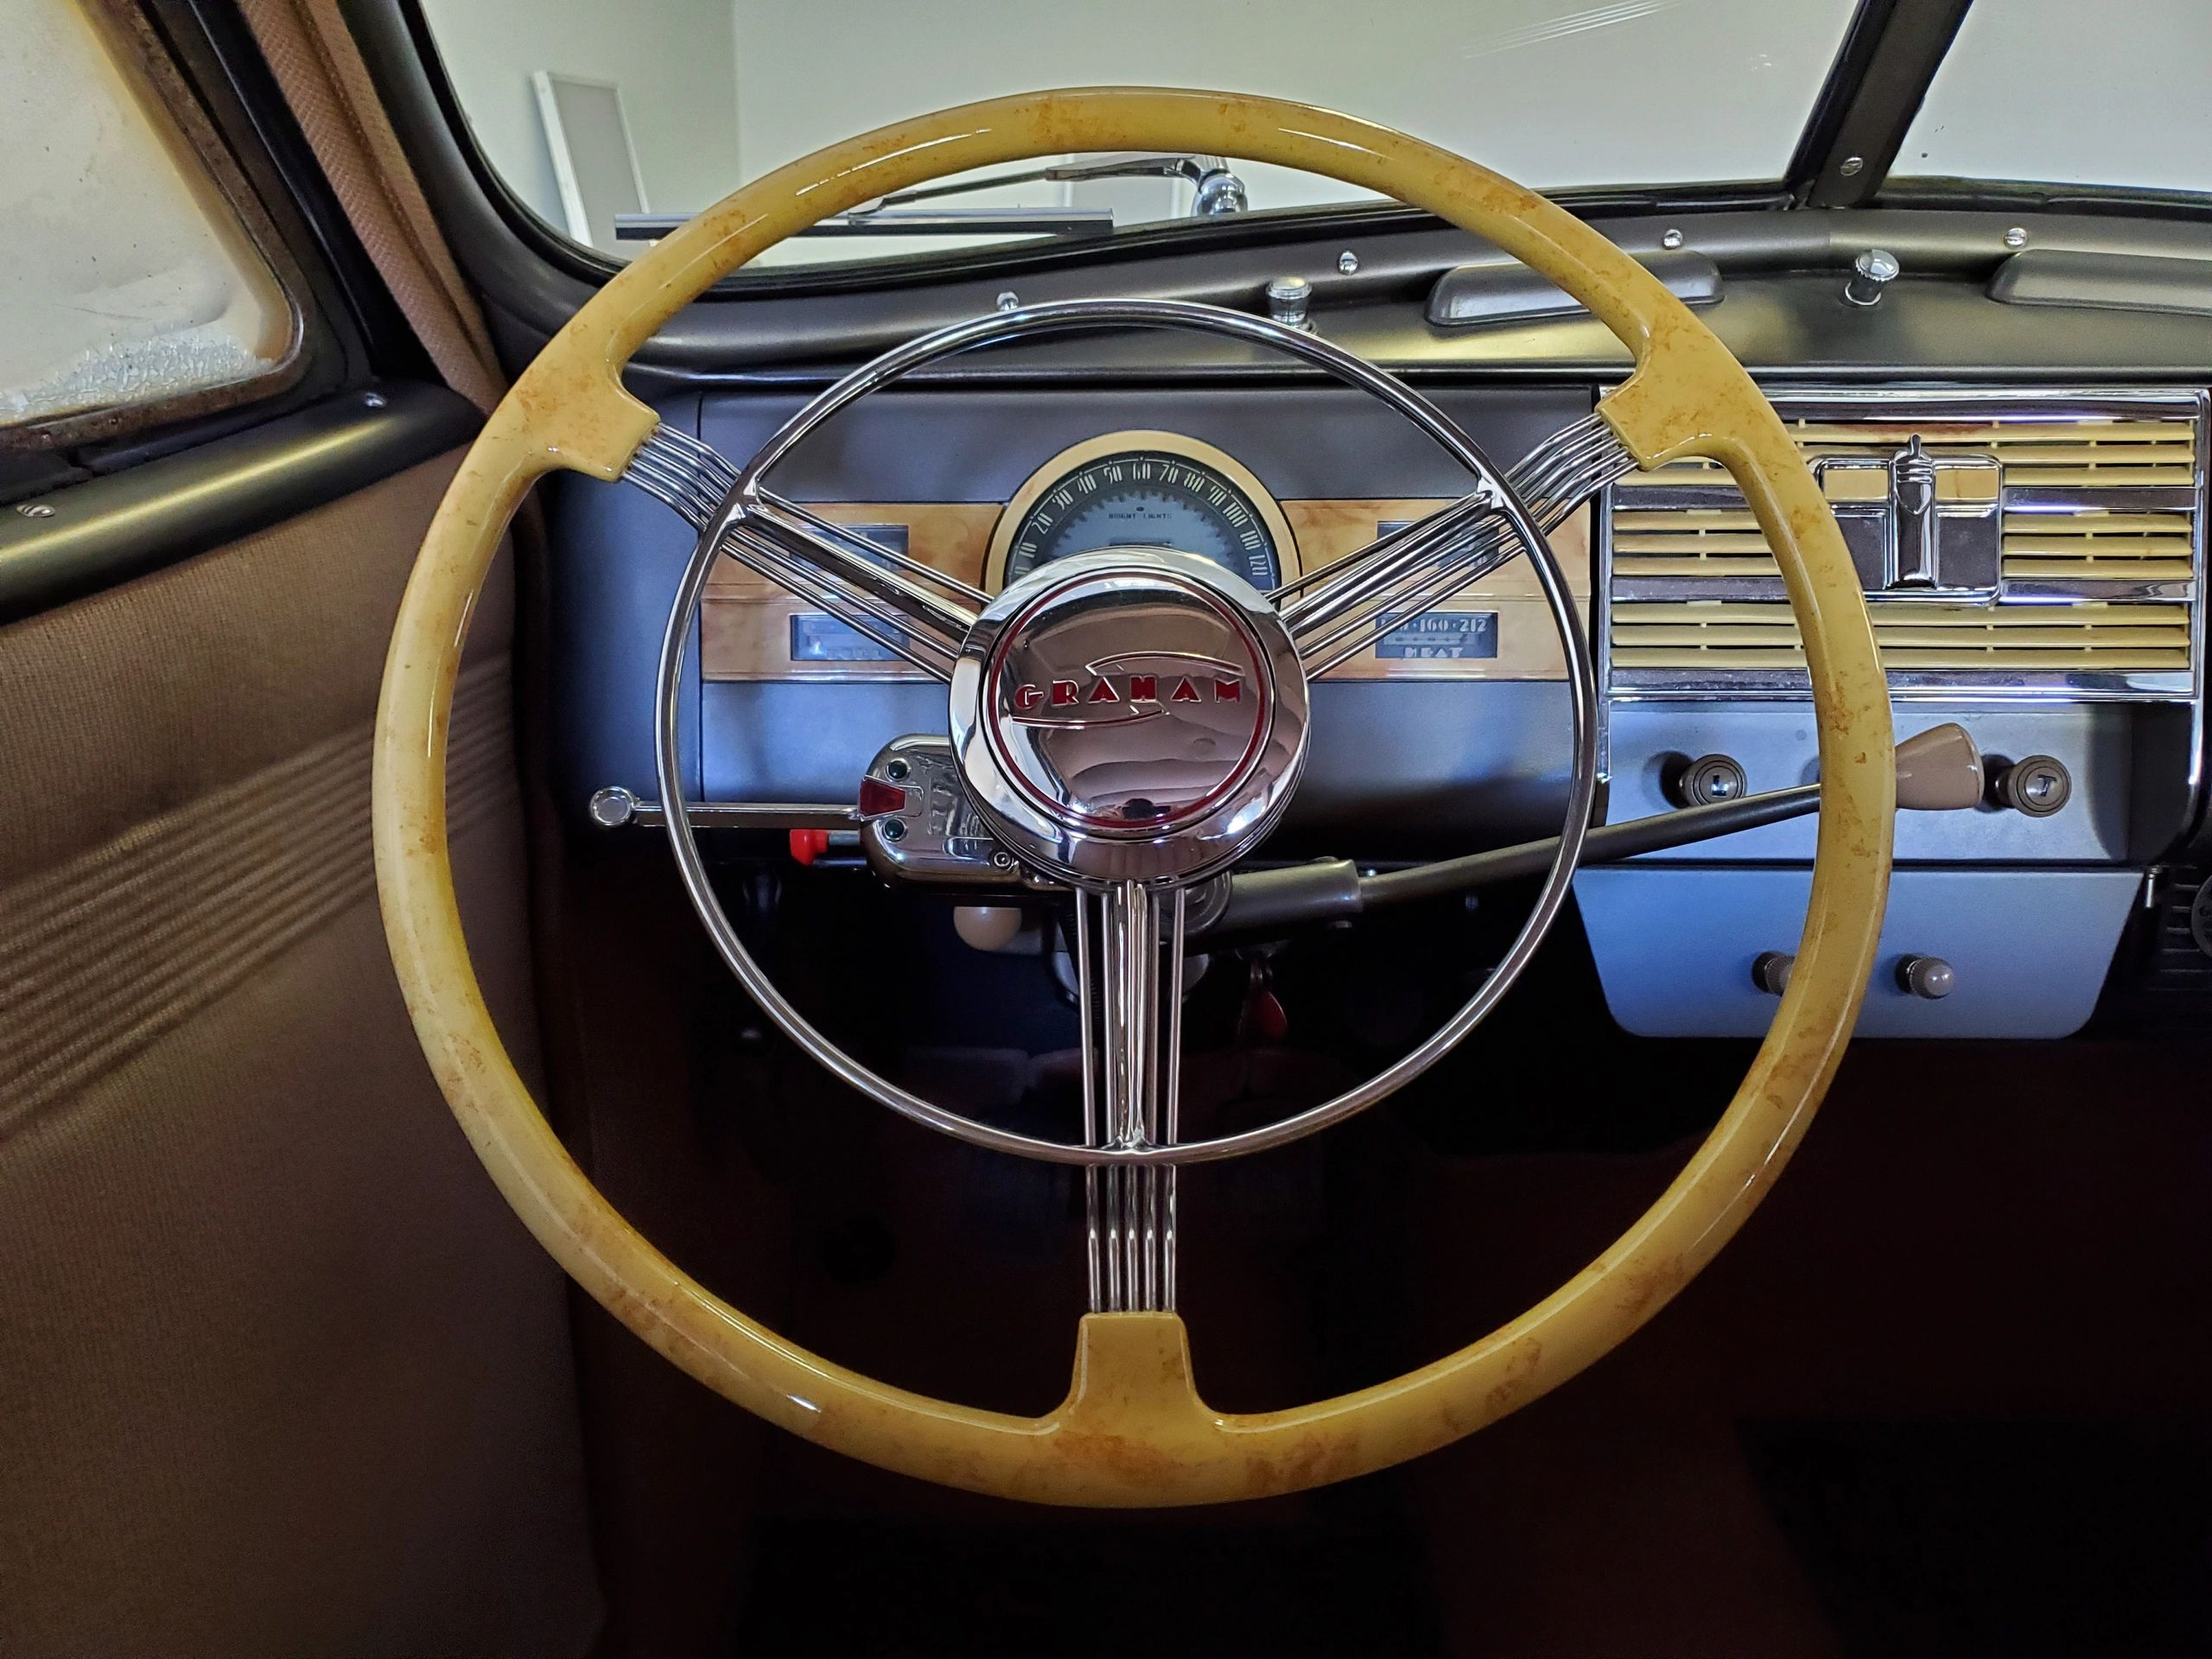 Banjo Steering Wheel and Banjo Steering Wheel Restoration for Antique Cars